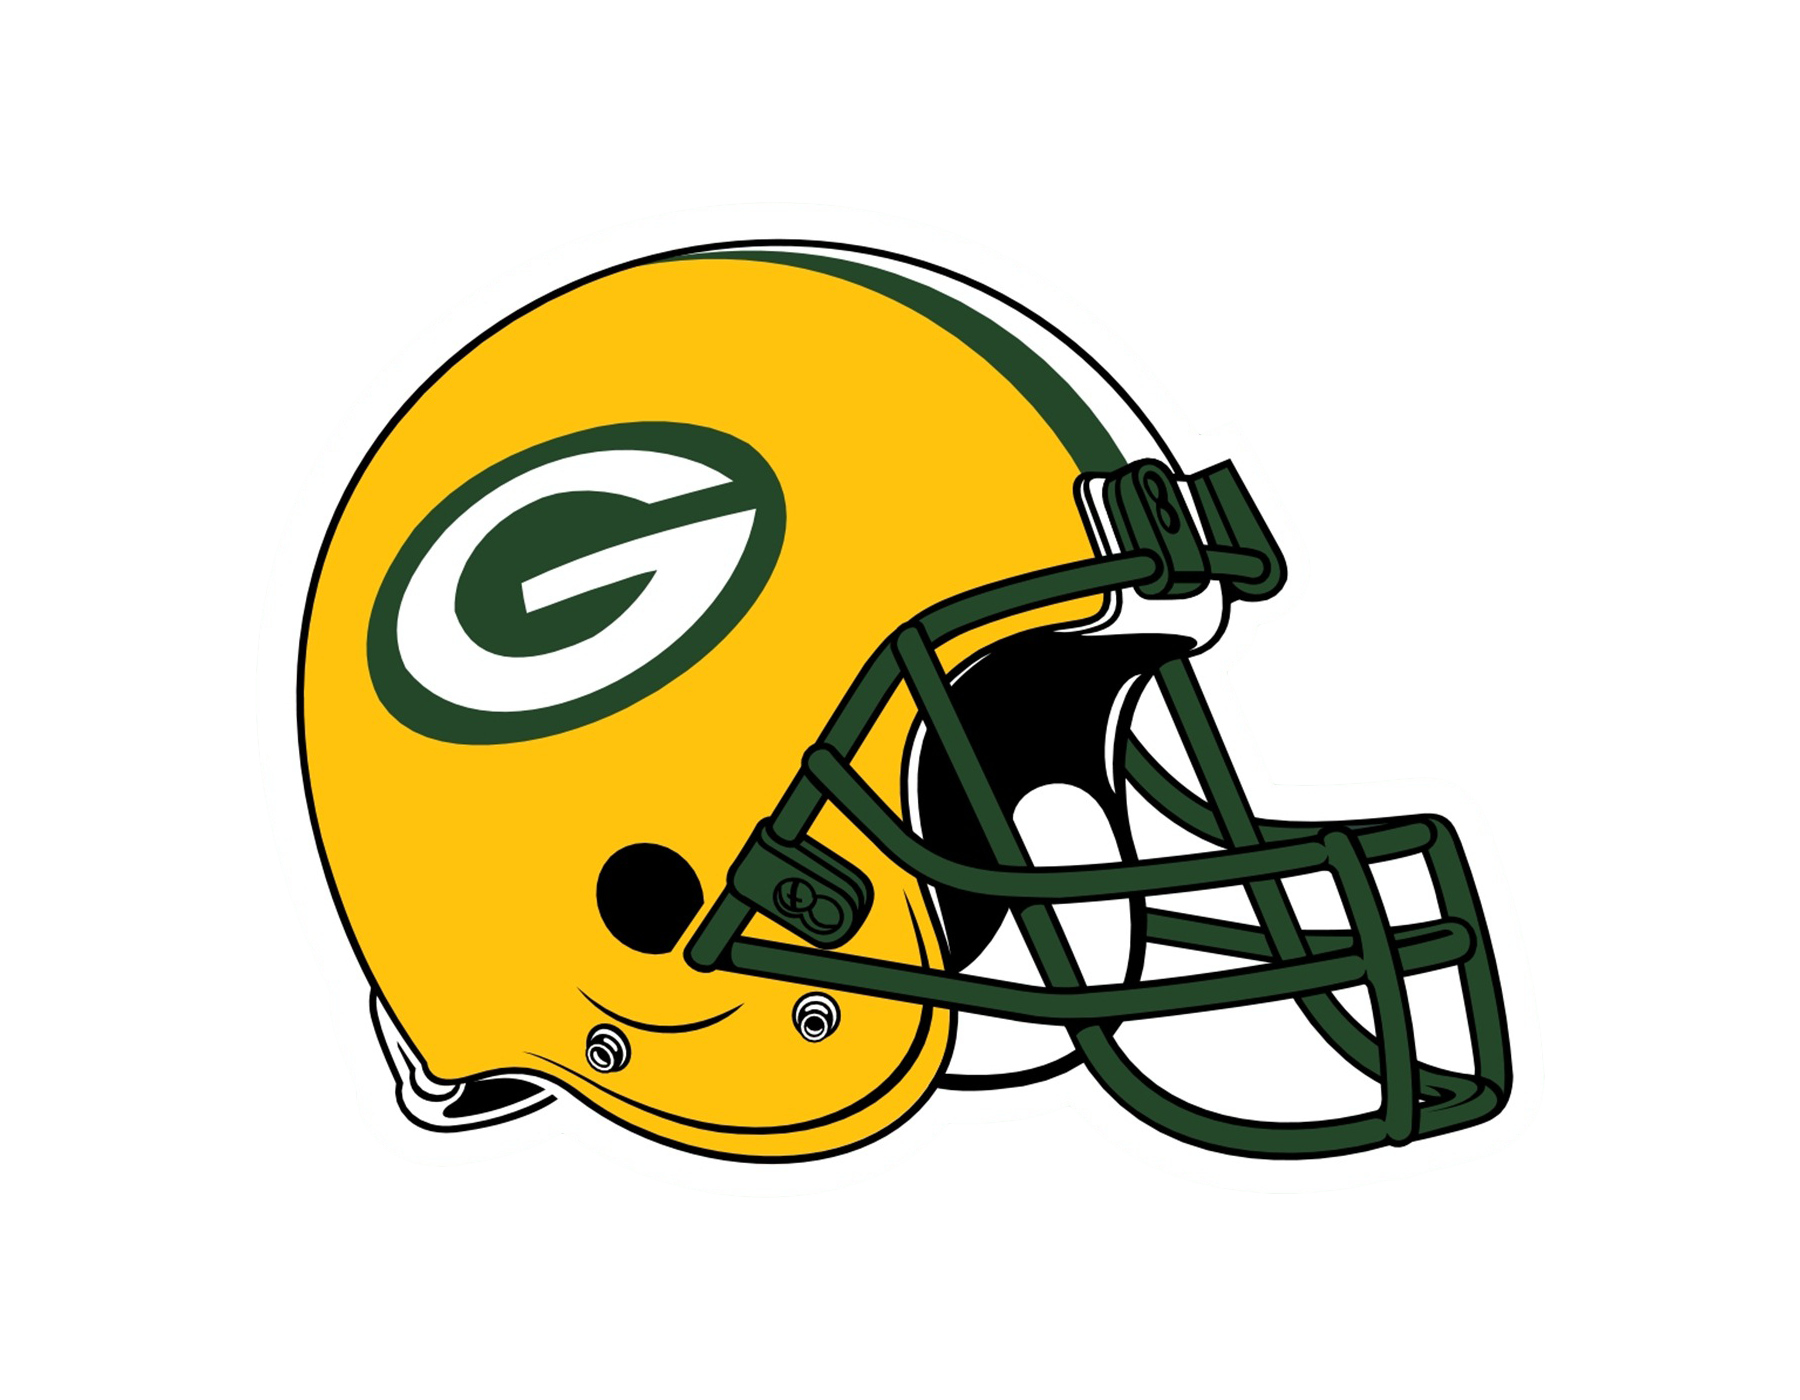 Packers helmet png. Green bay logo transparent